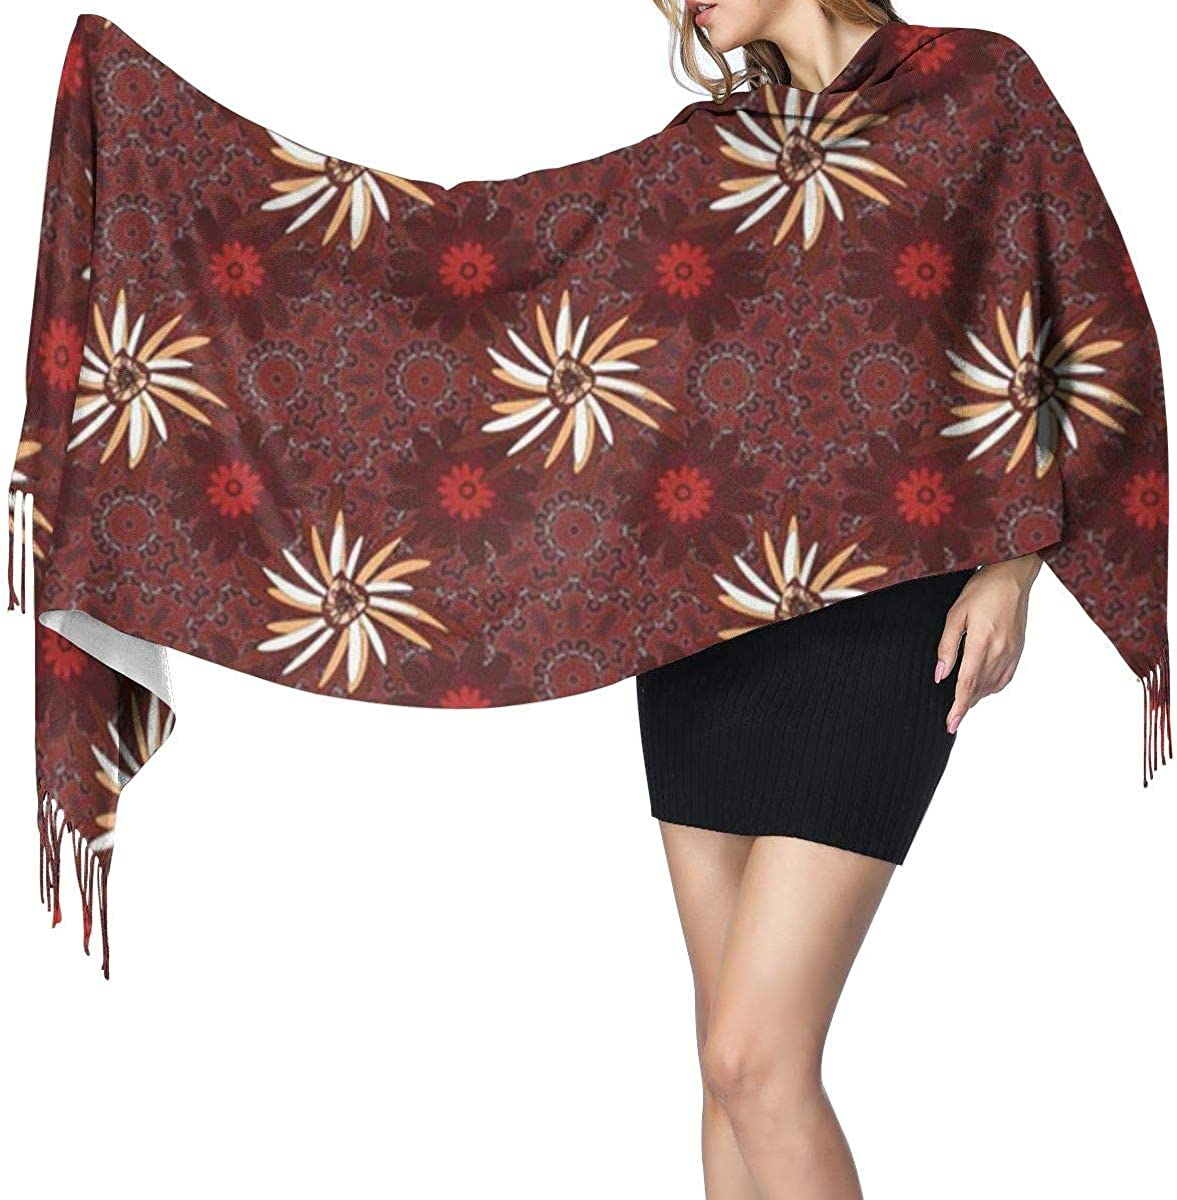 Soft Cashmere Scarf For Women Beautiful Abstract Cute Mille Fleurs Floral Red Brown And Gray Pattern Anniversary Beauty Fashion Lady Shawls,Comfortable Warm Winter Scarfs